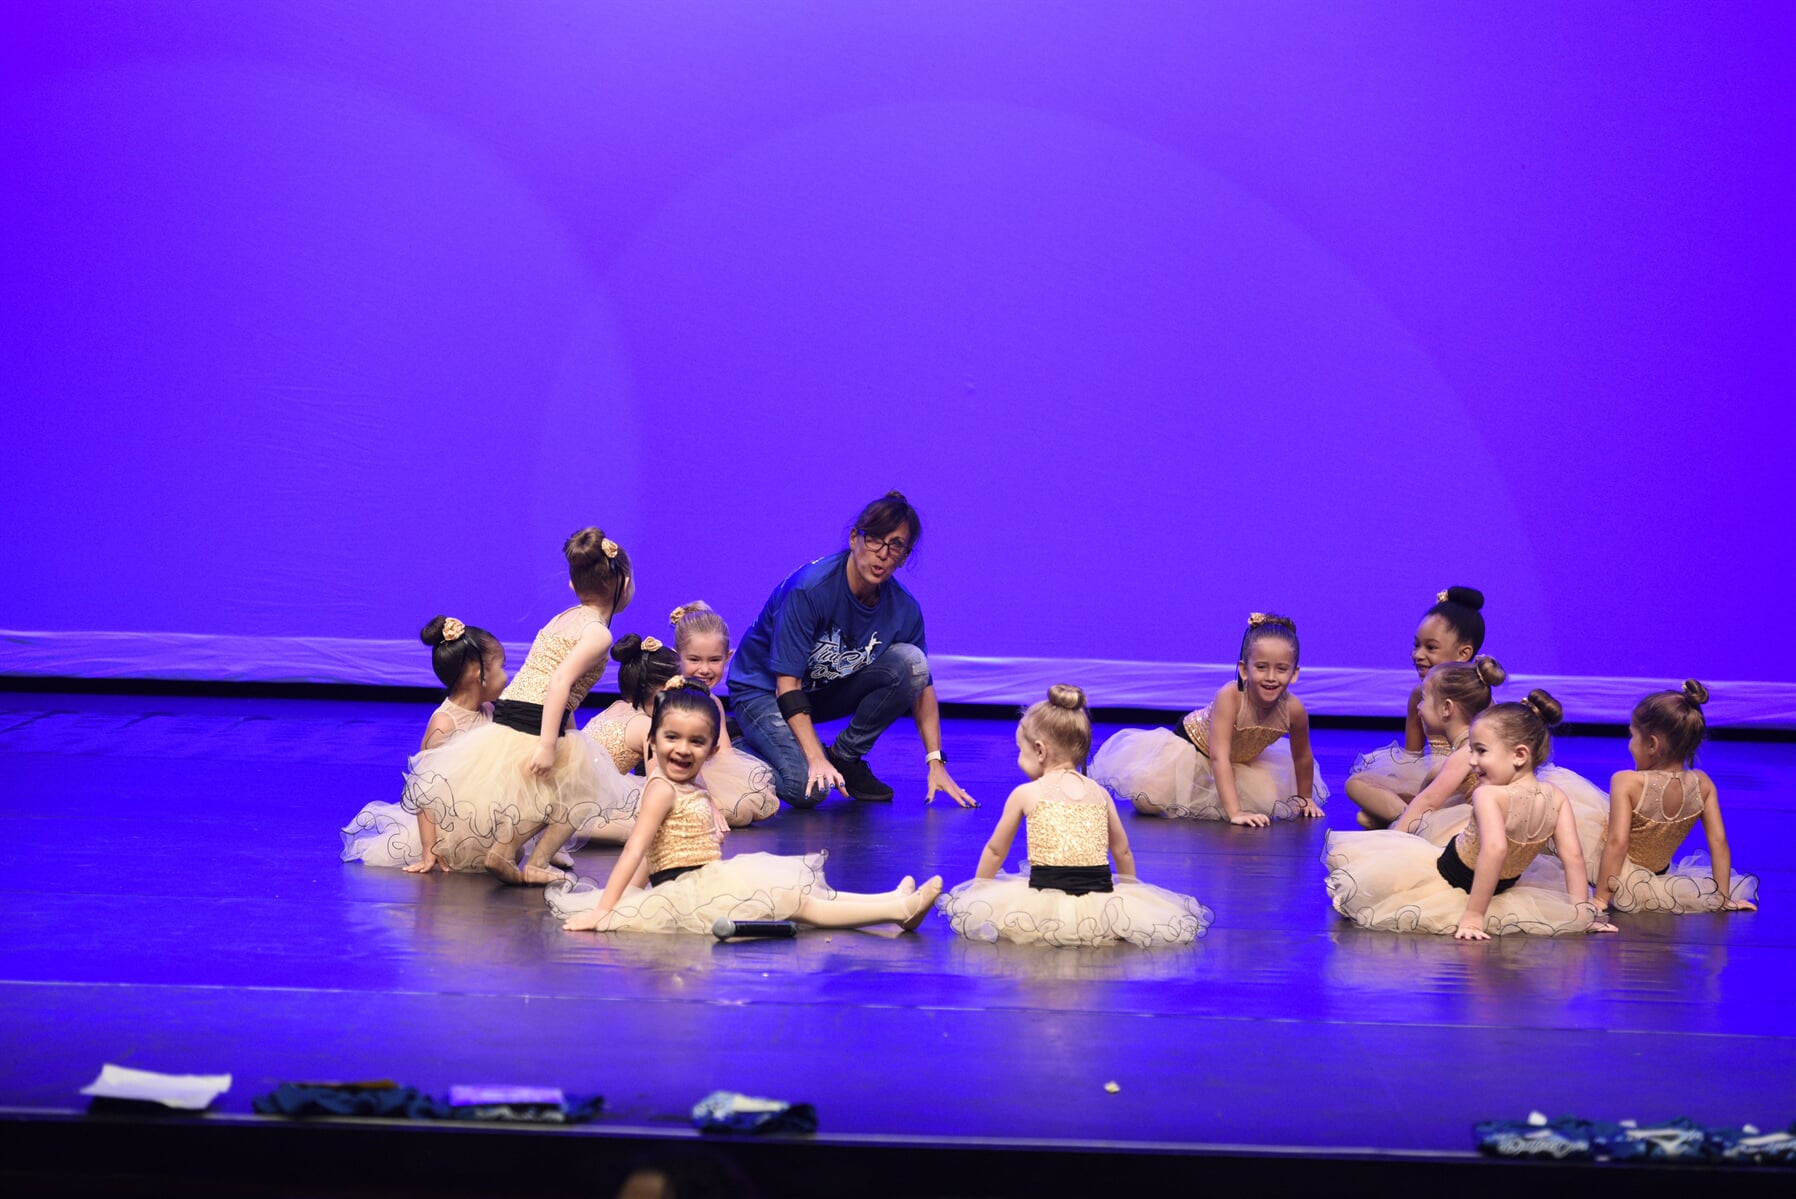 Group of little ballerinas in rehearsal on stage